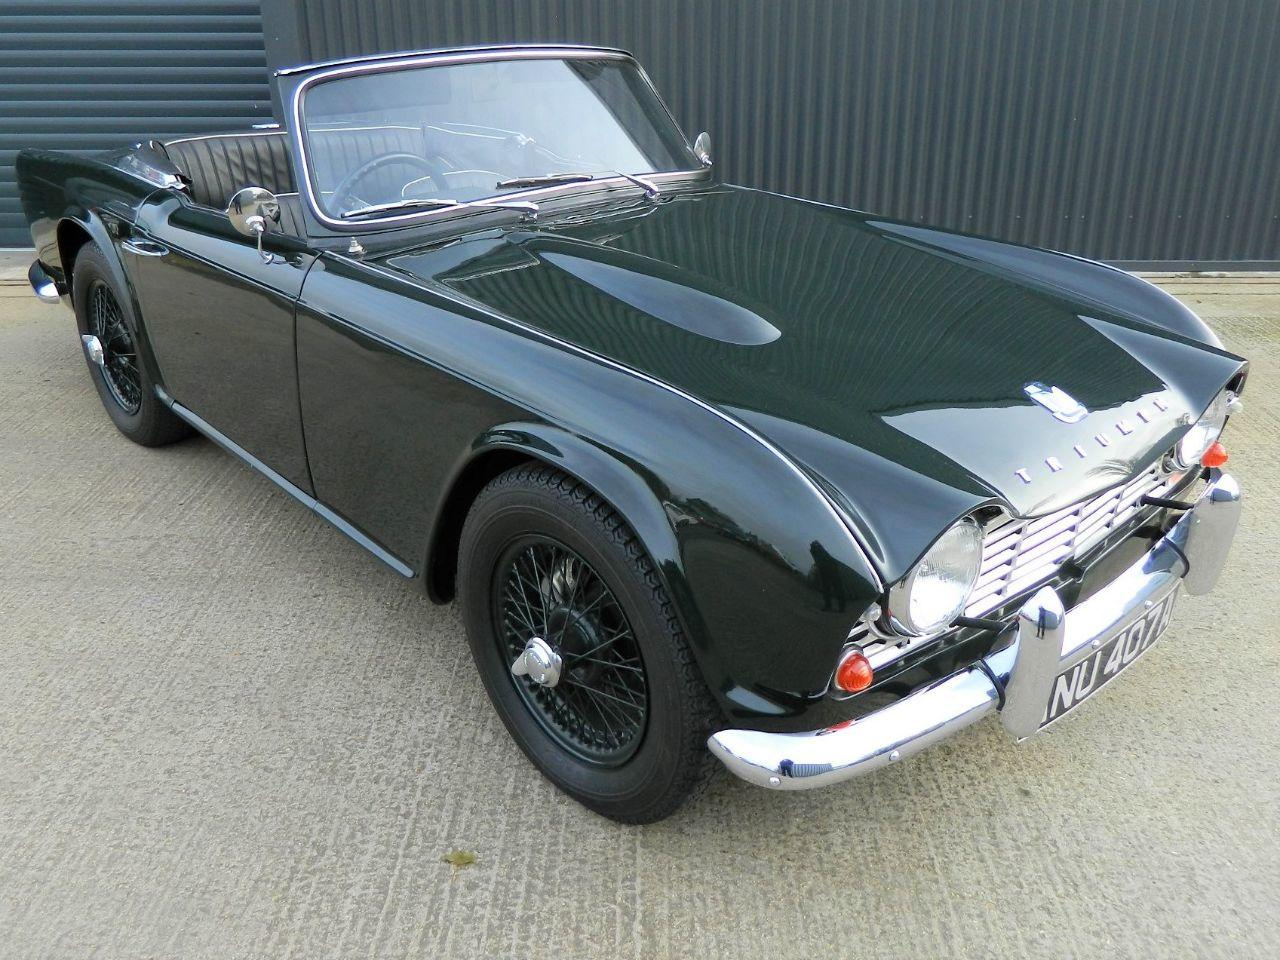 Triumph TR4 2.1 Sports Petrol Triumph Racing Green